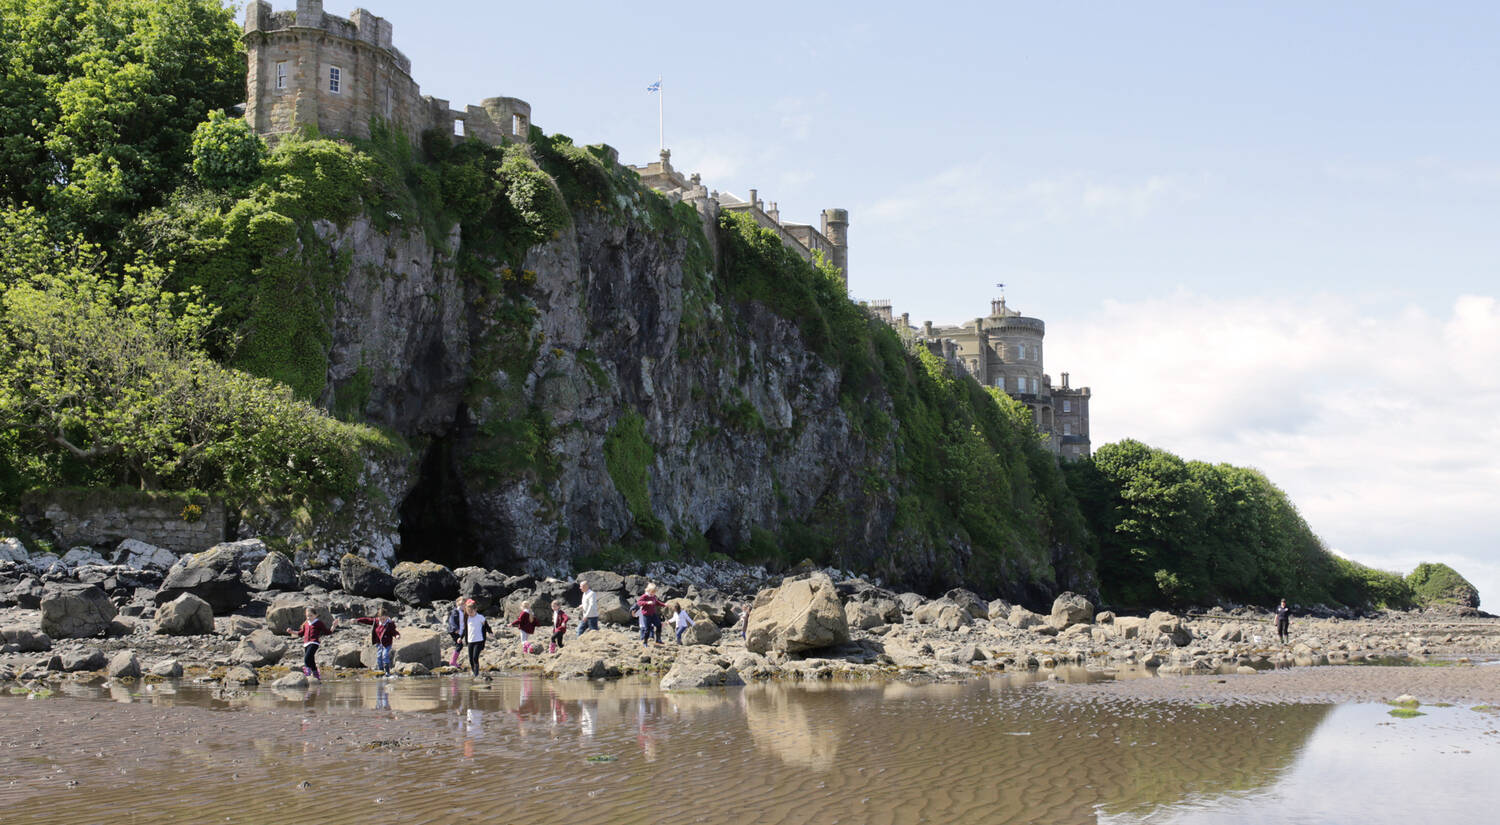 A view of Culzean Castle from the shoreline. Children play in the rockpools surrounded by large boulders.